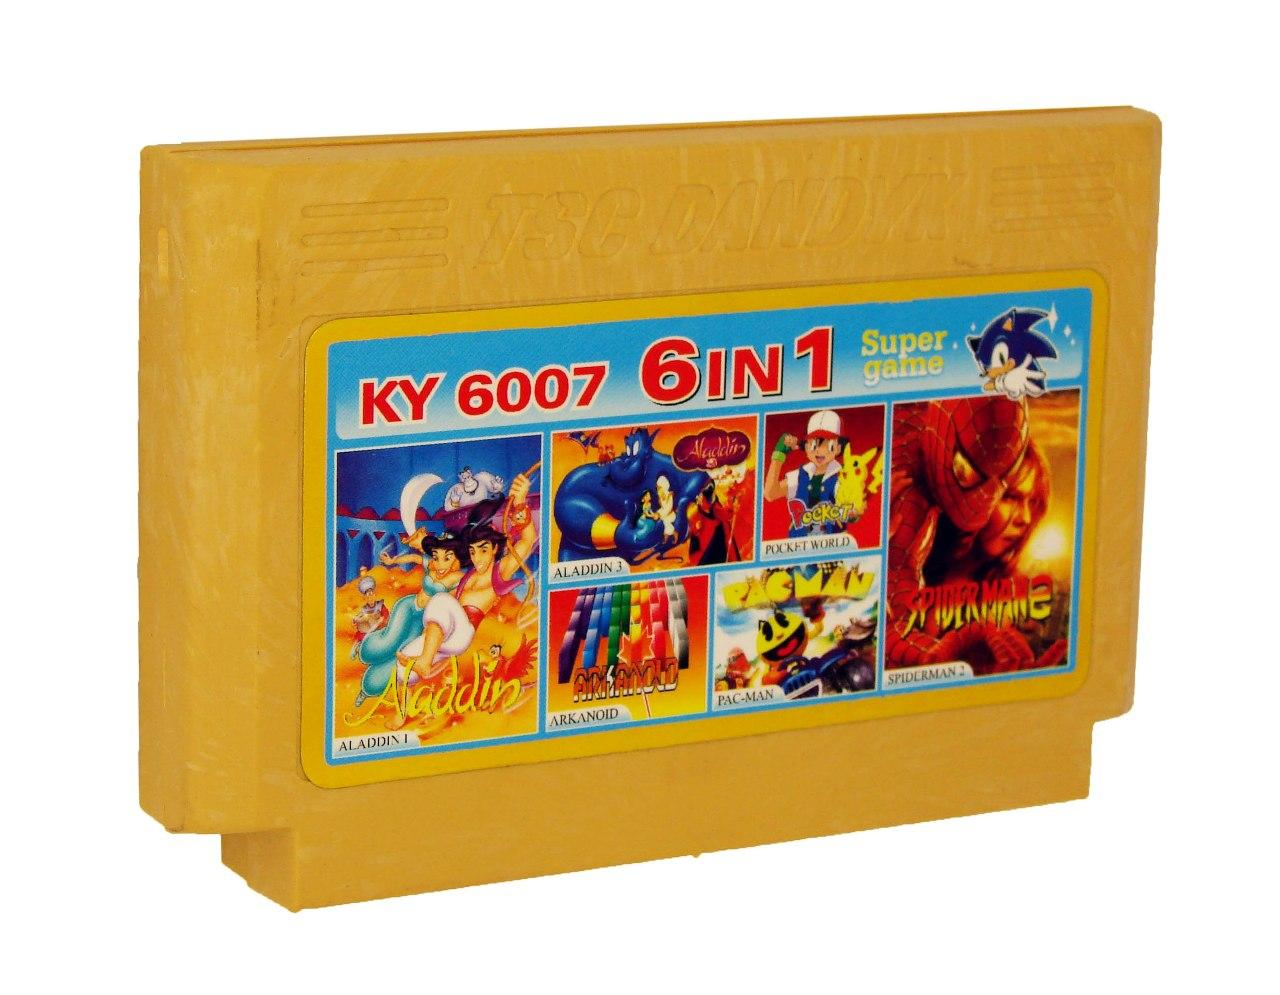 Картридж для Денди KY 6007 6 in 1 (Dendy), Spiderman 2, Pac-man, Pocket World, Arkanoid, Aladdin, Aladdin 3